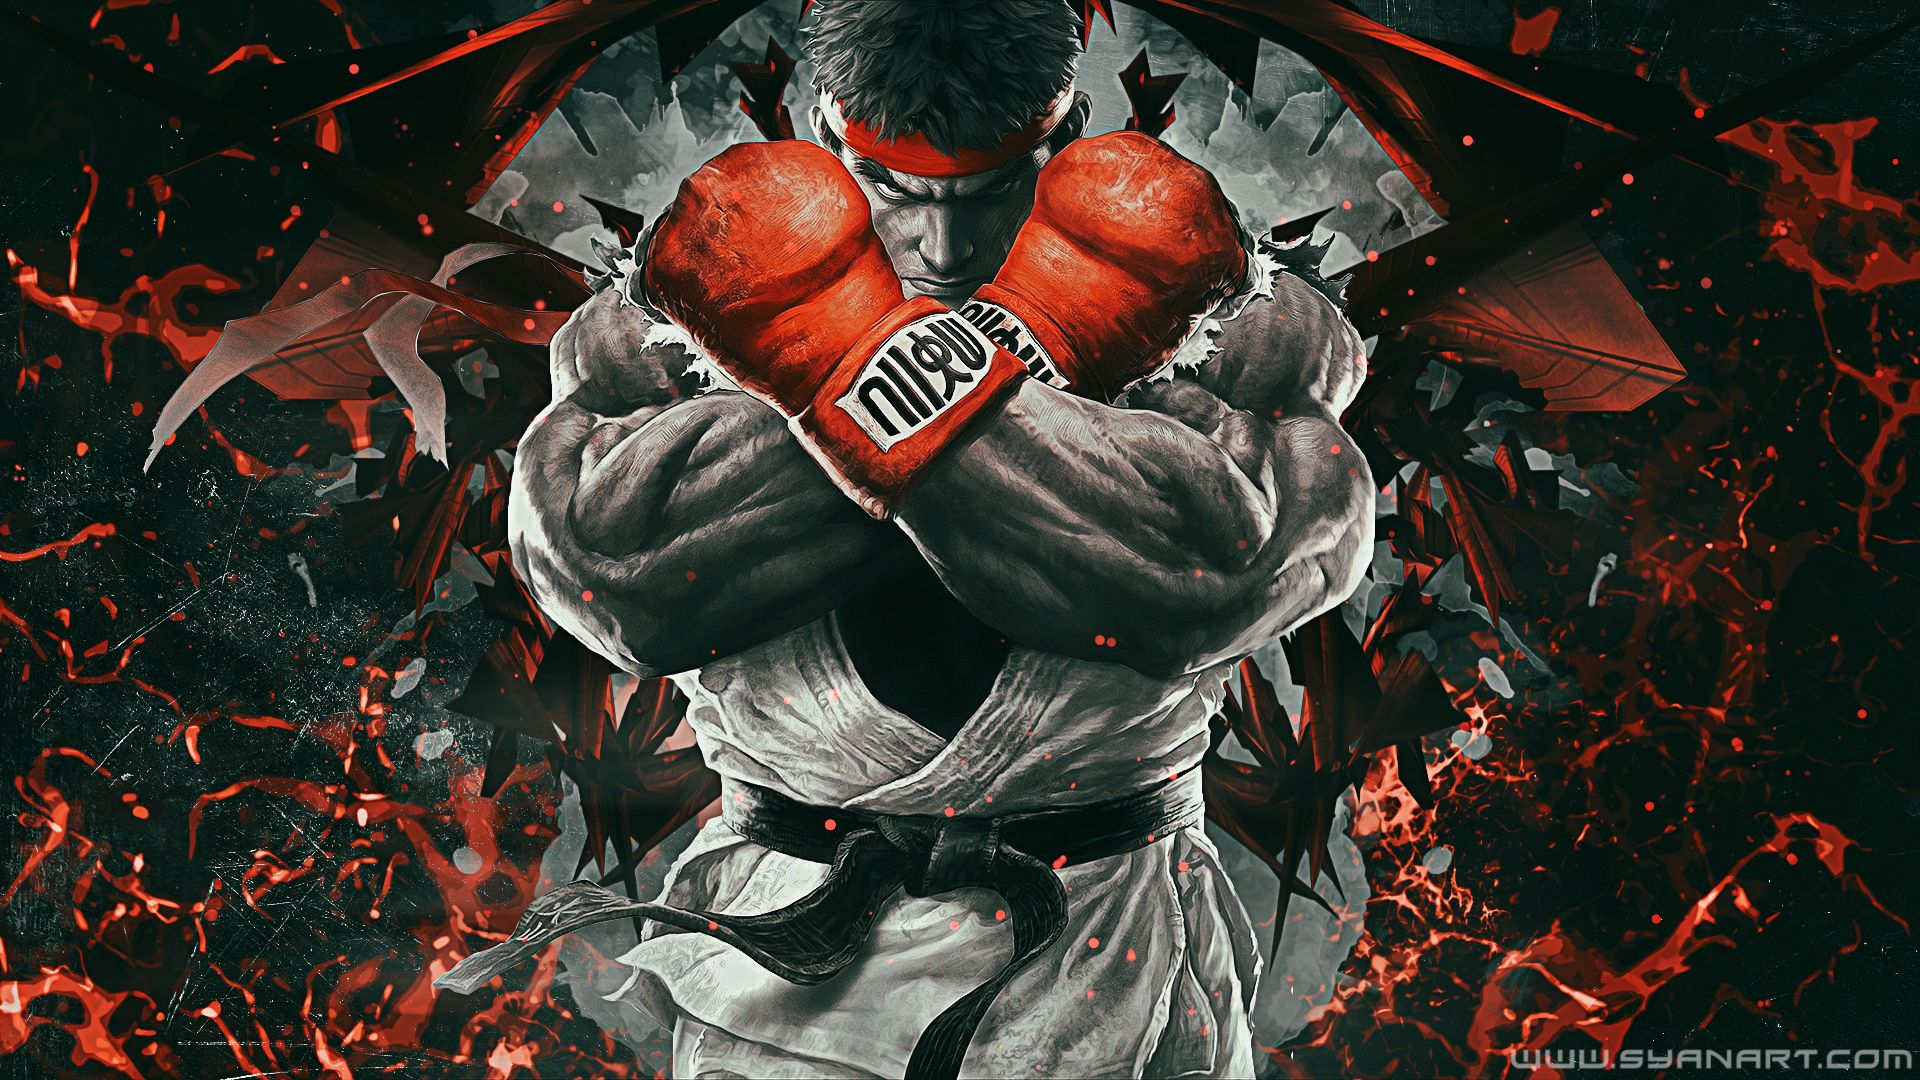 Street Fighter Wallpapers Top Free Street Fighter Backgrounds